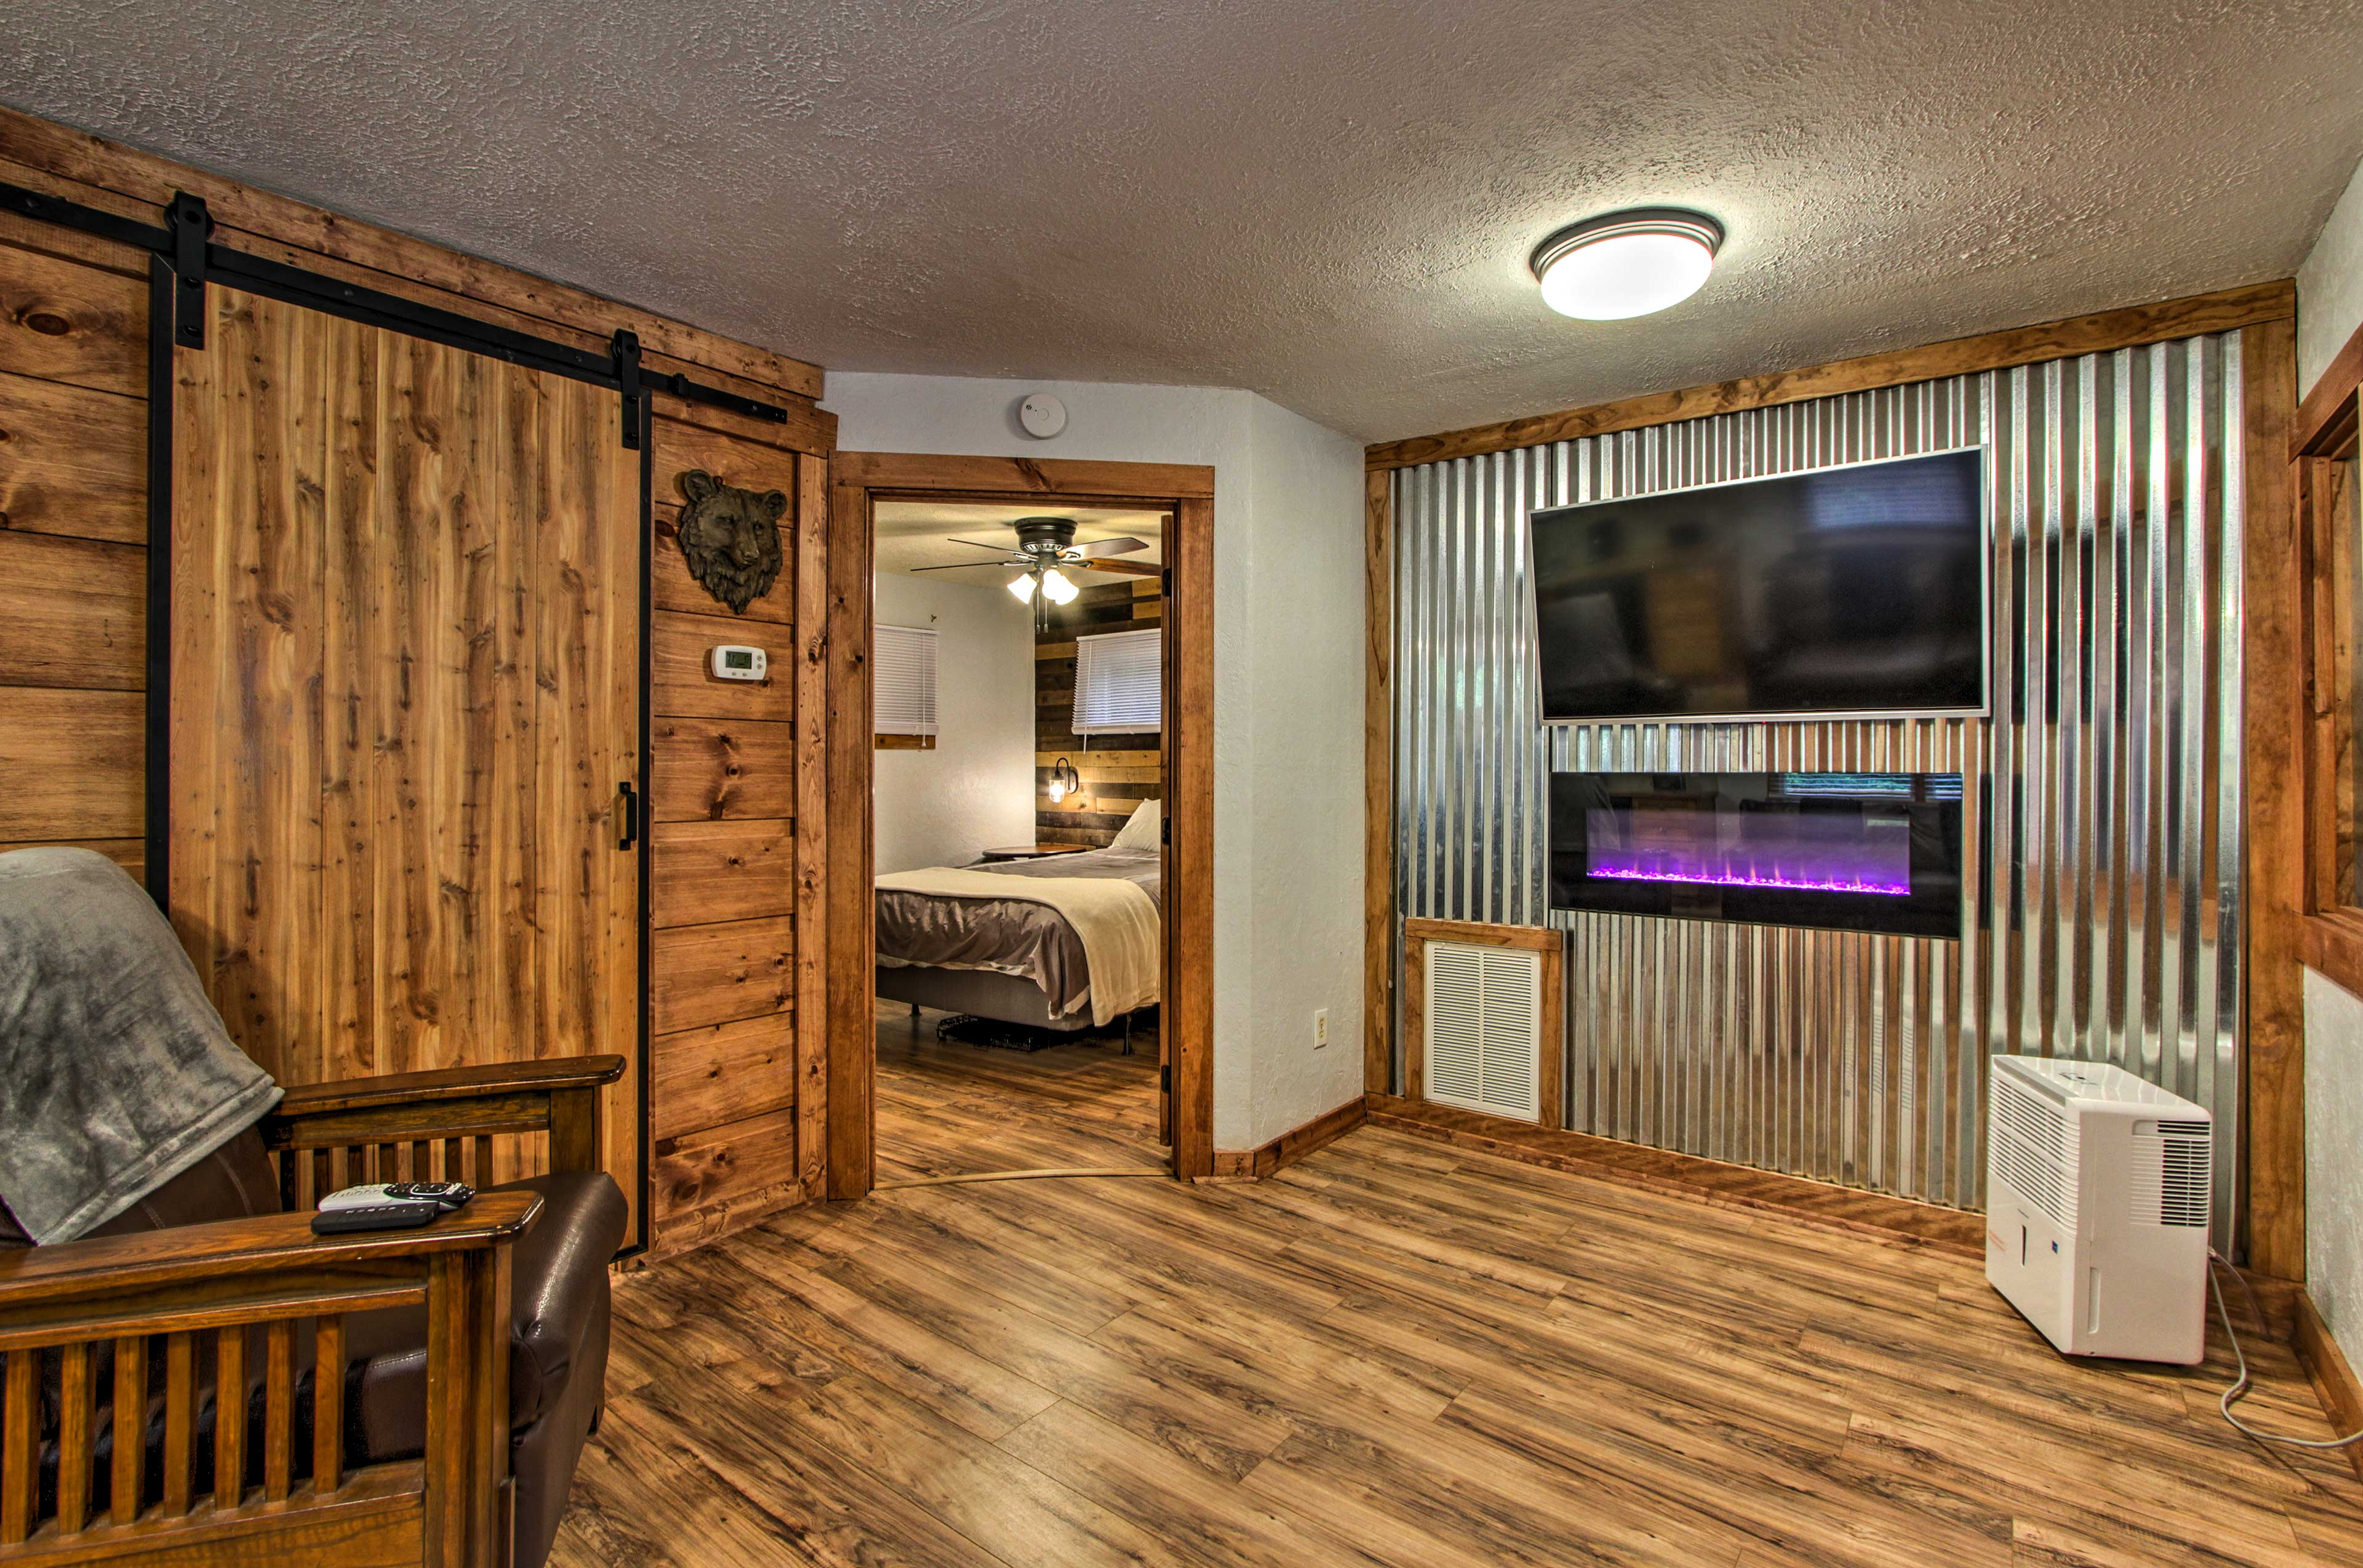 Relax in the living room and watch the flat-screen satellite TV.